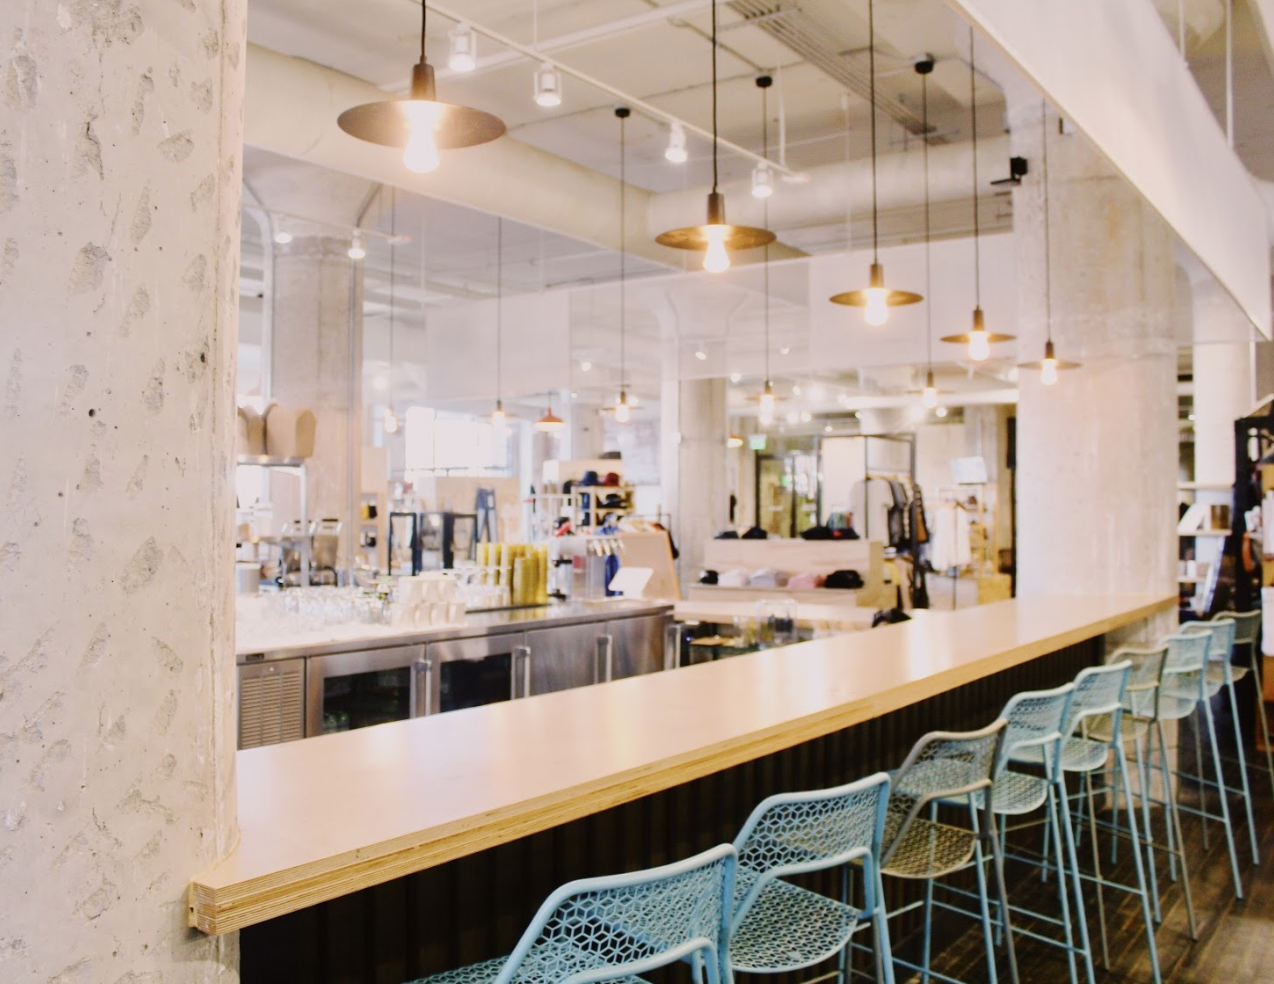 The bar at Likewise Eatery